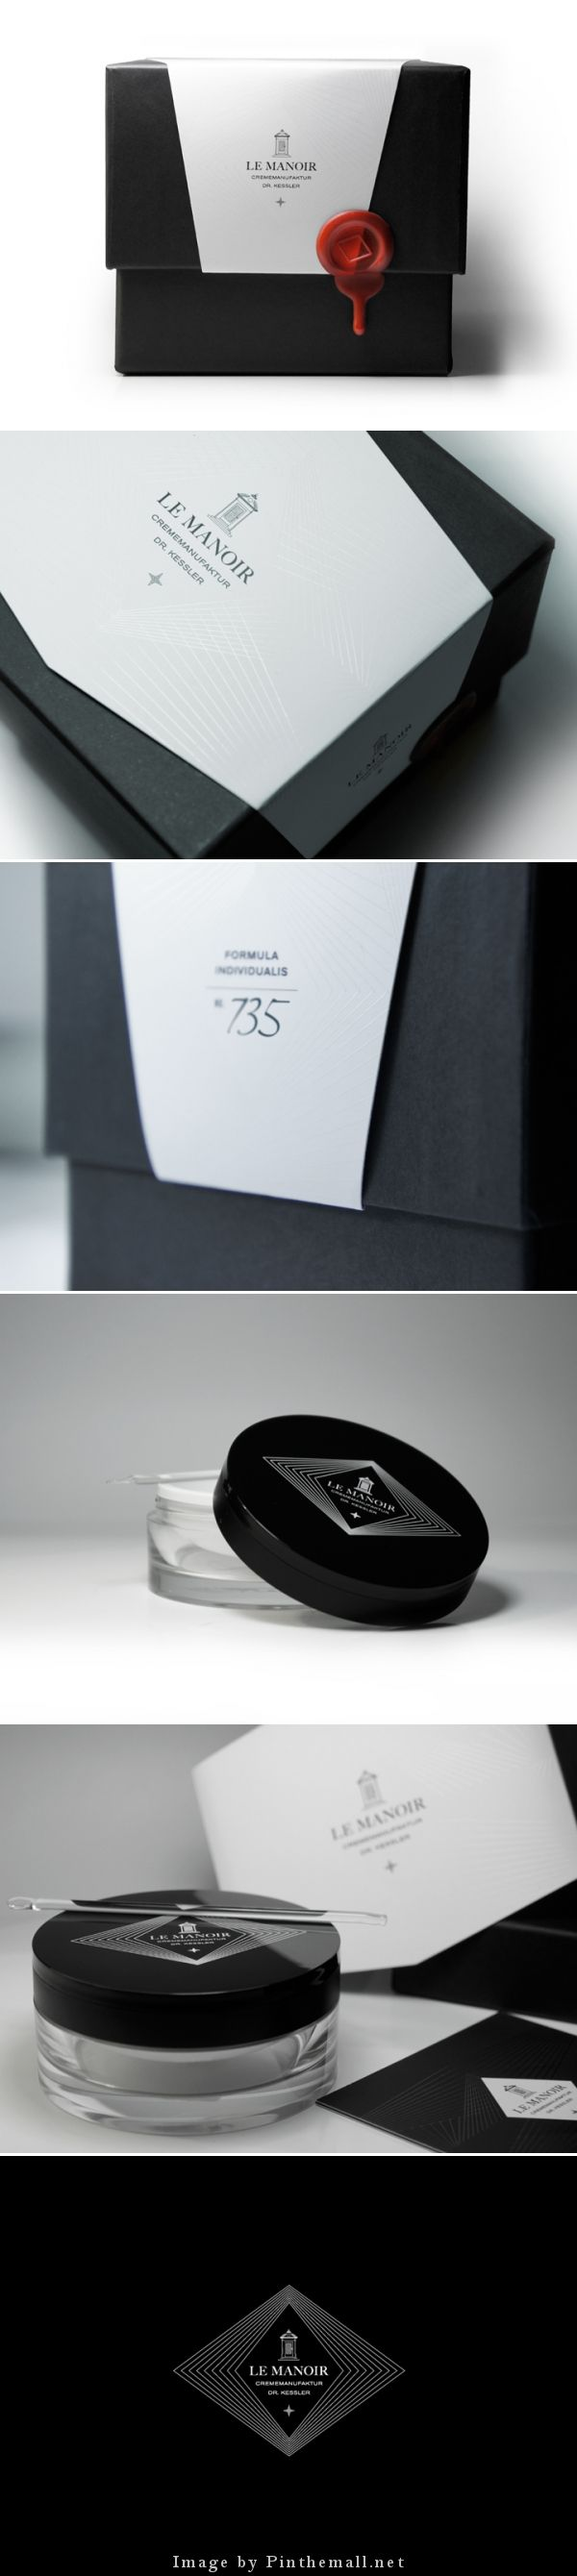 Le Manoir. Very pretty simplistic packaging design curated by Packaging Diva PD created via http://retaildesignblog.net/2012/03/06/le-manoir-packaging-design-by-atelier-christian-von-der-heide/